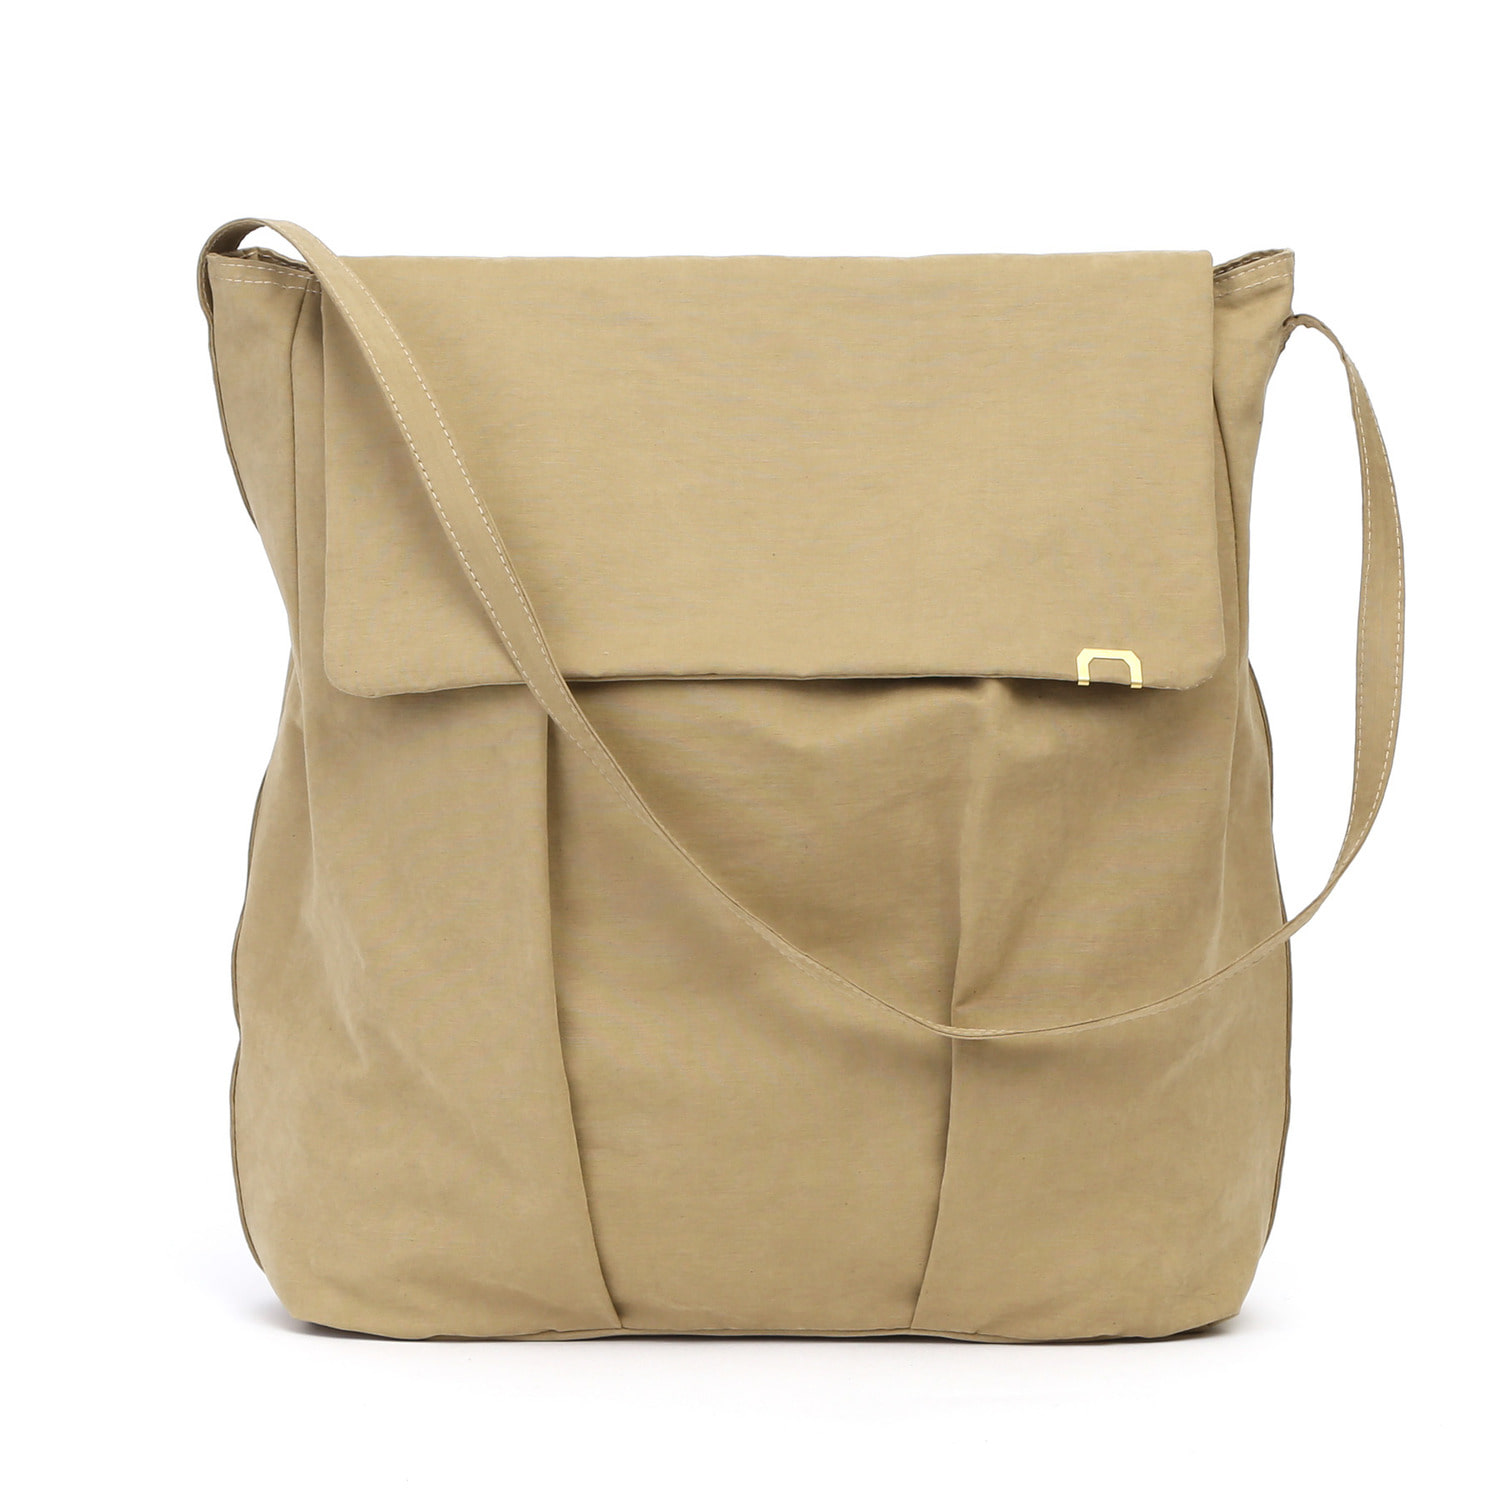 LADDER BAG / WRINKLE / NPC / SAHARA DESERT